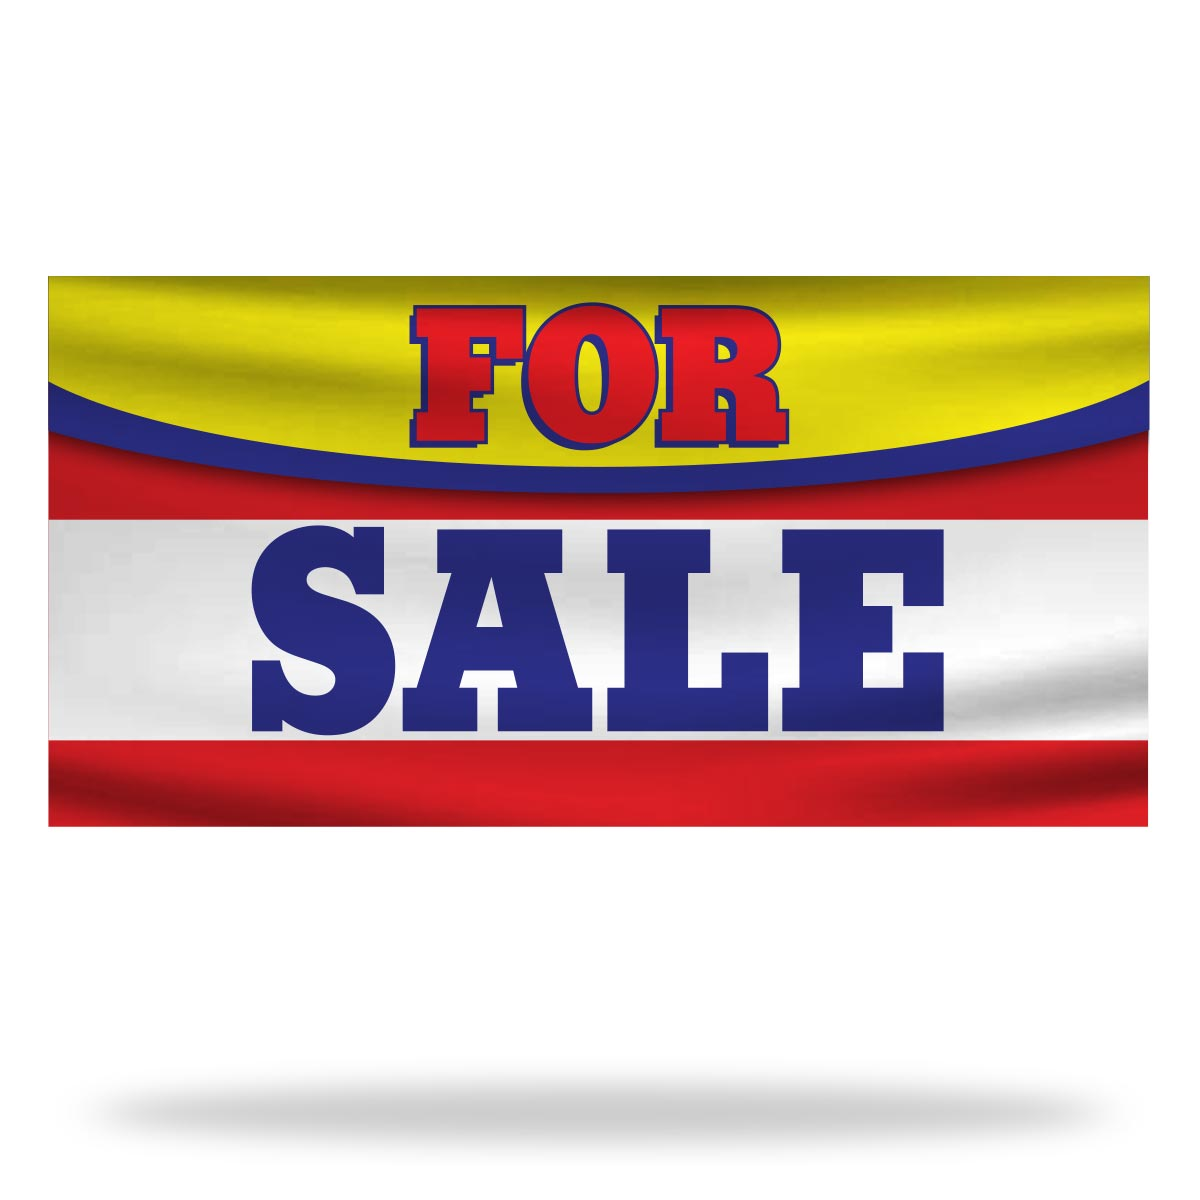 For Sale Flags & Banners Design 03